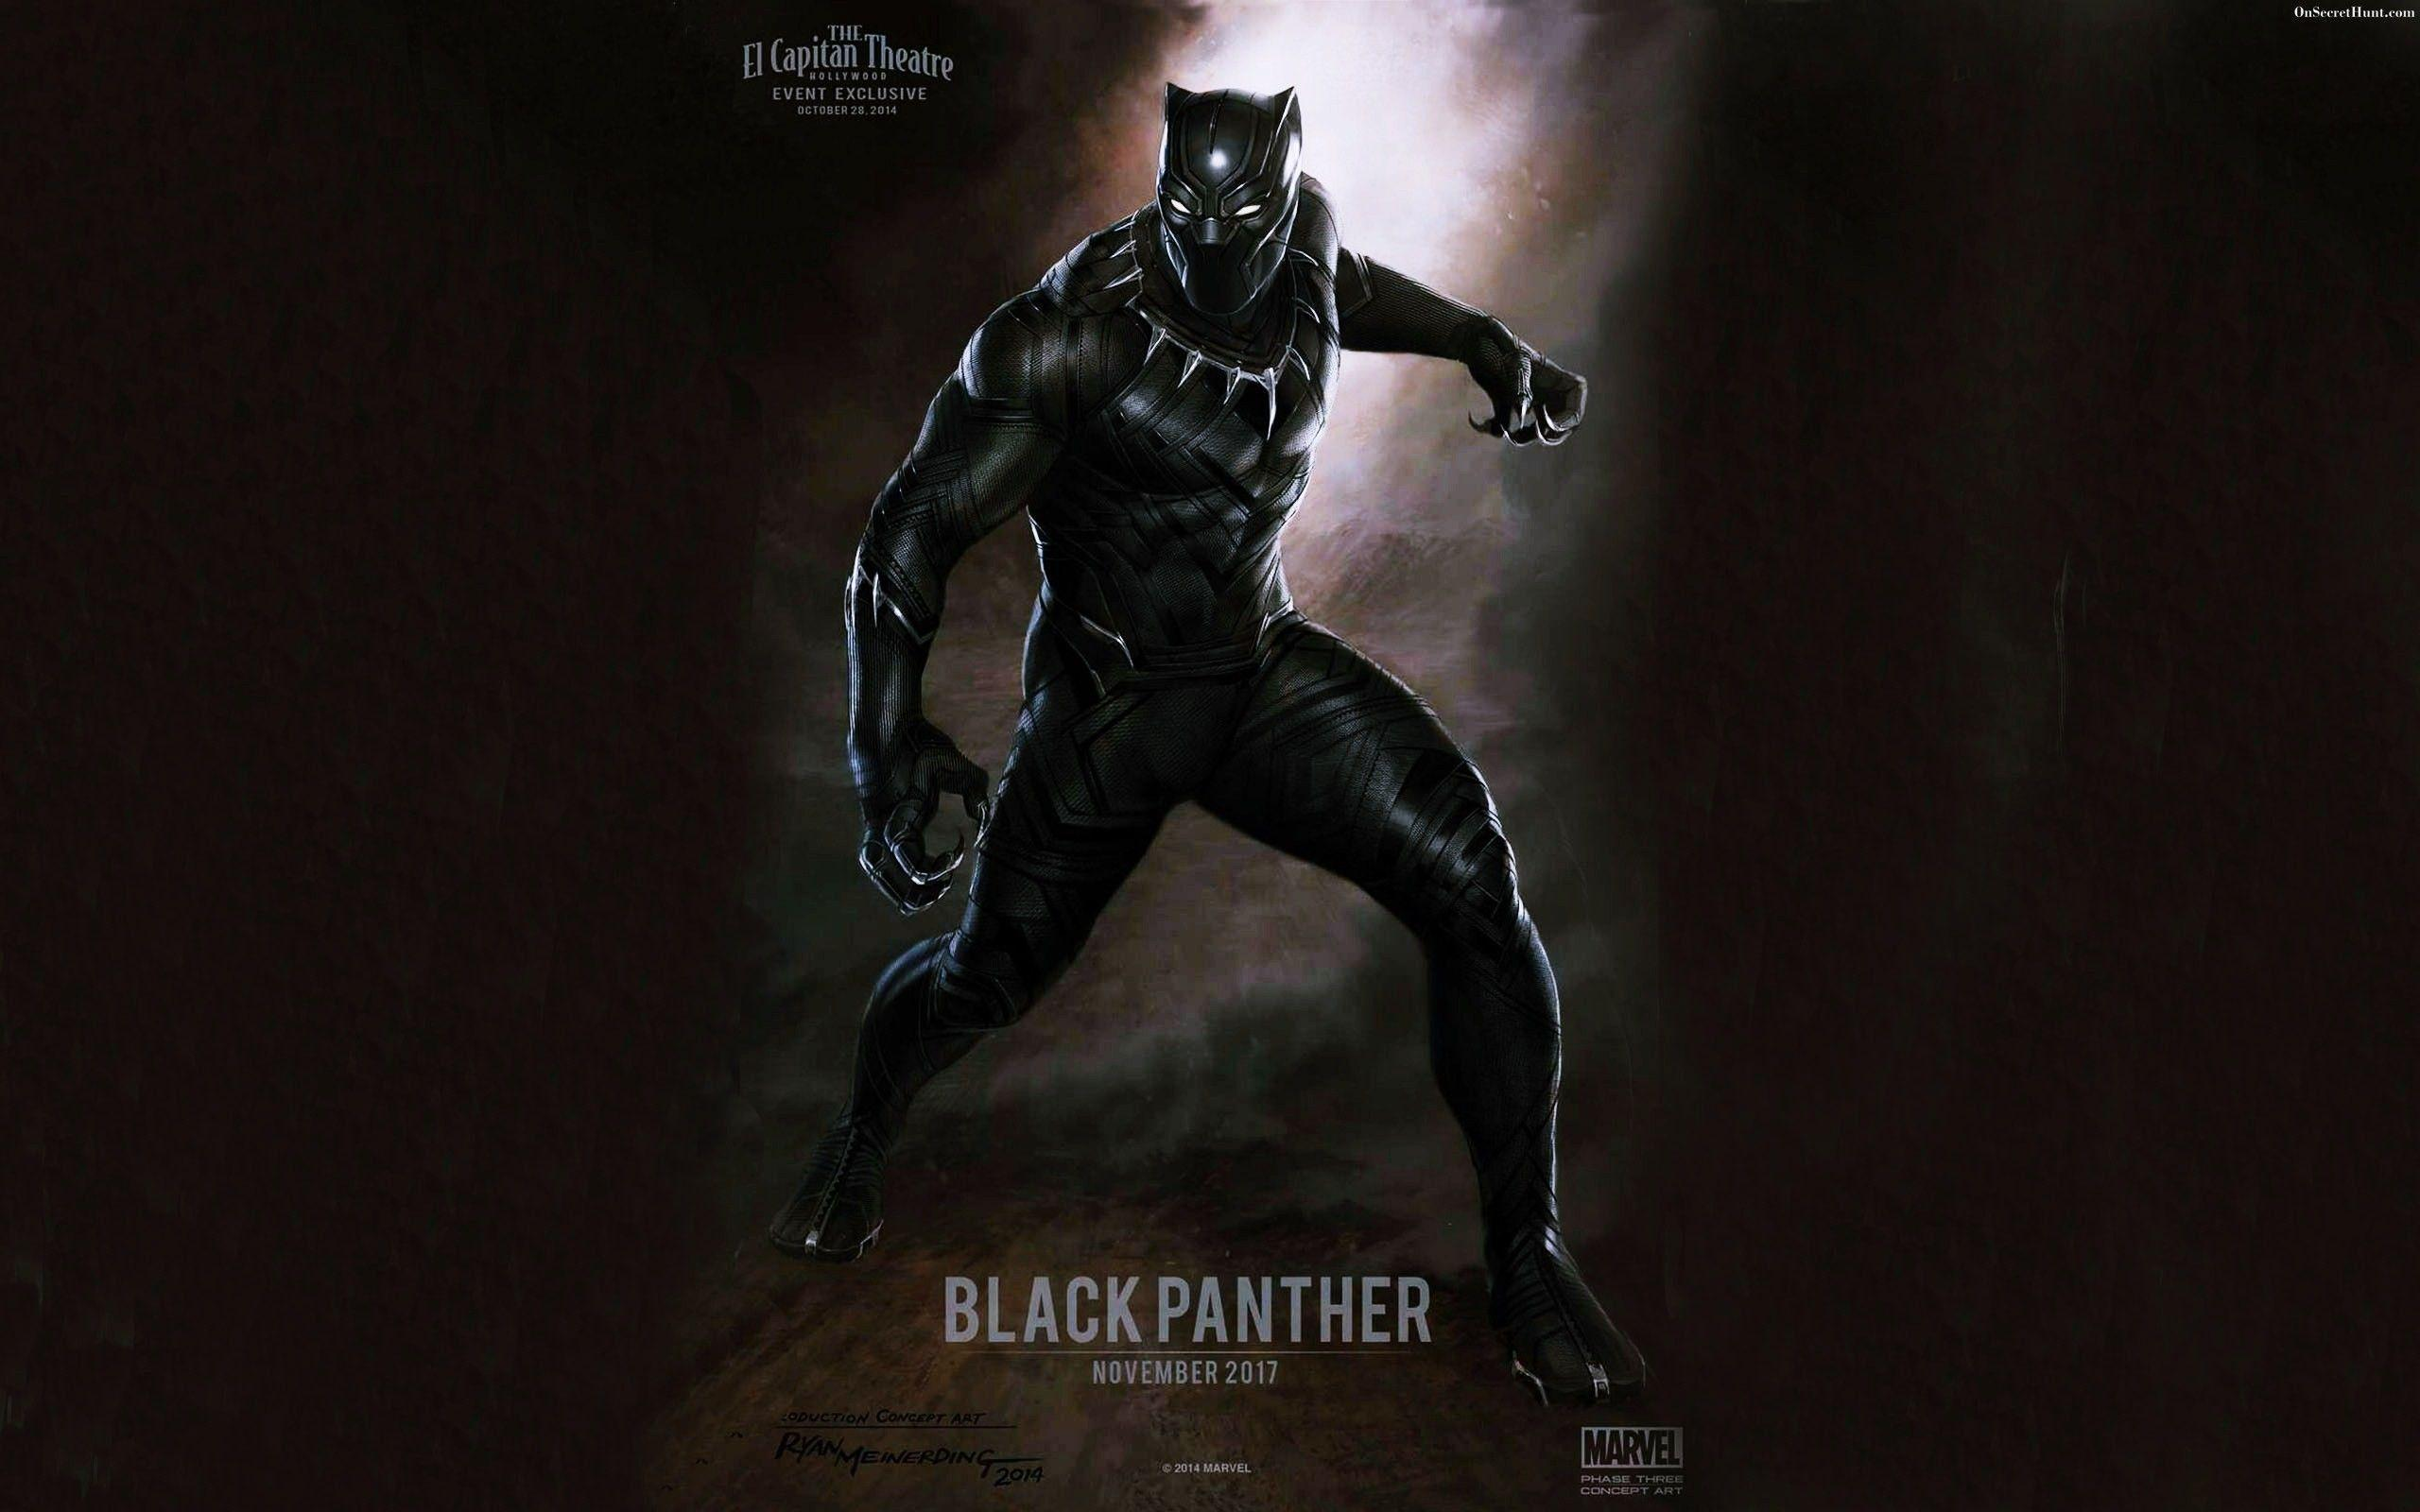 Black Panther backgrounds